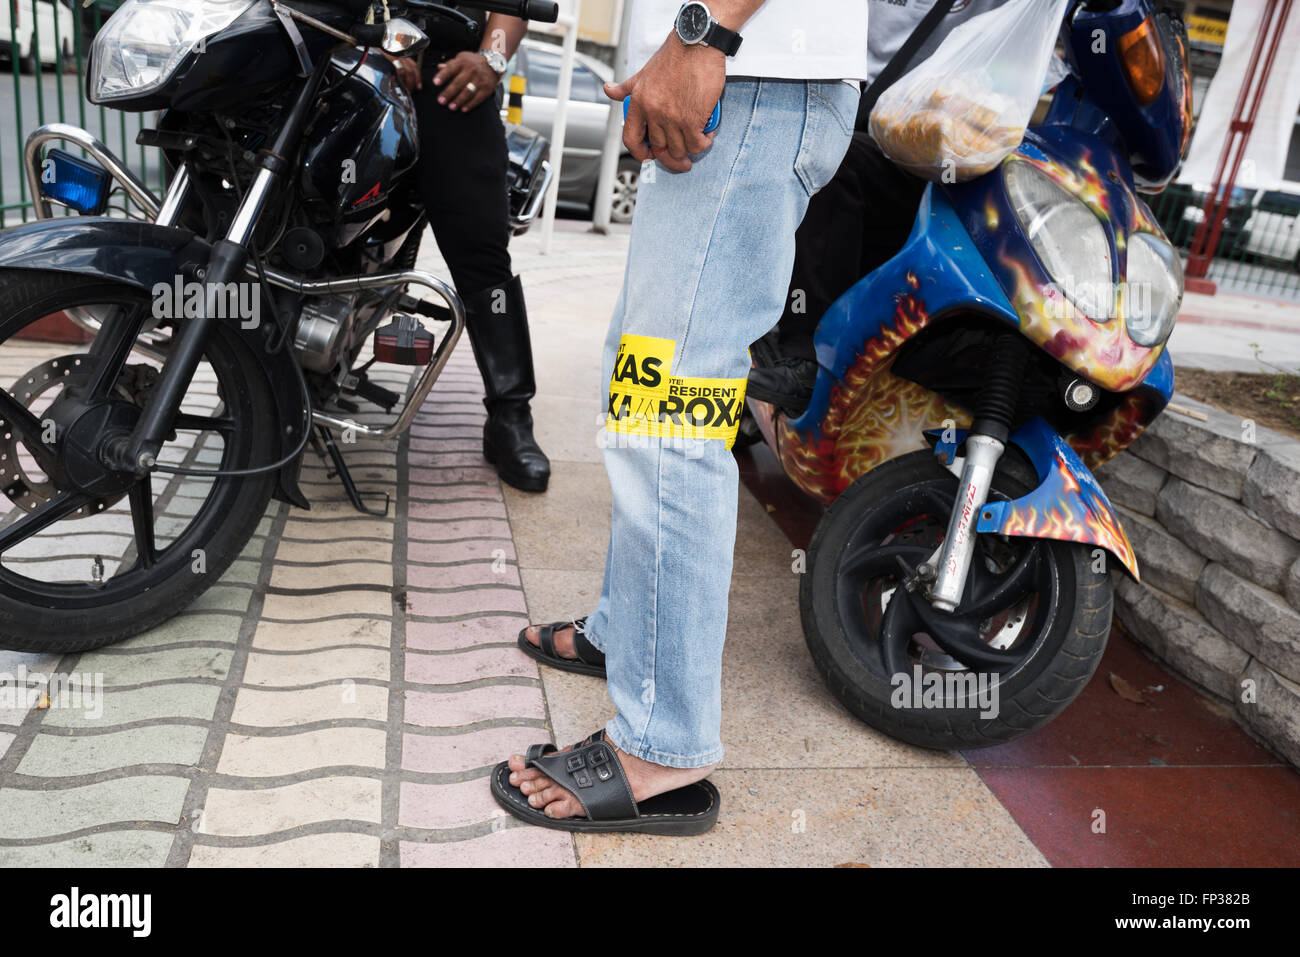 Manila; Philippines - March 13; 2016: Mar Roxas  presidential candidate`s campaign material used in an alternative - Stock Image